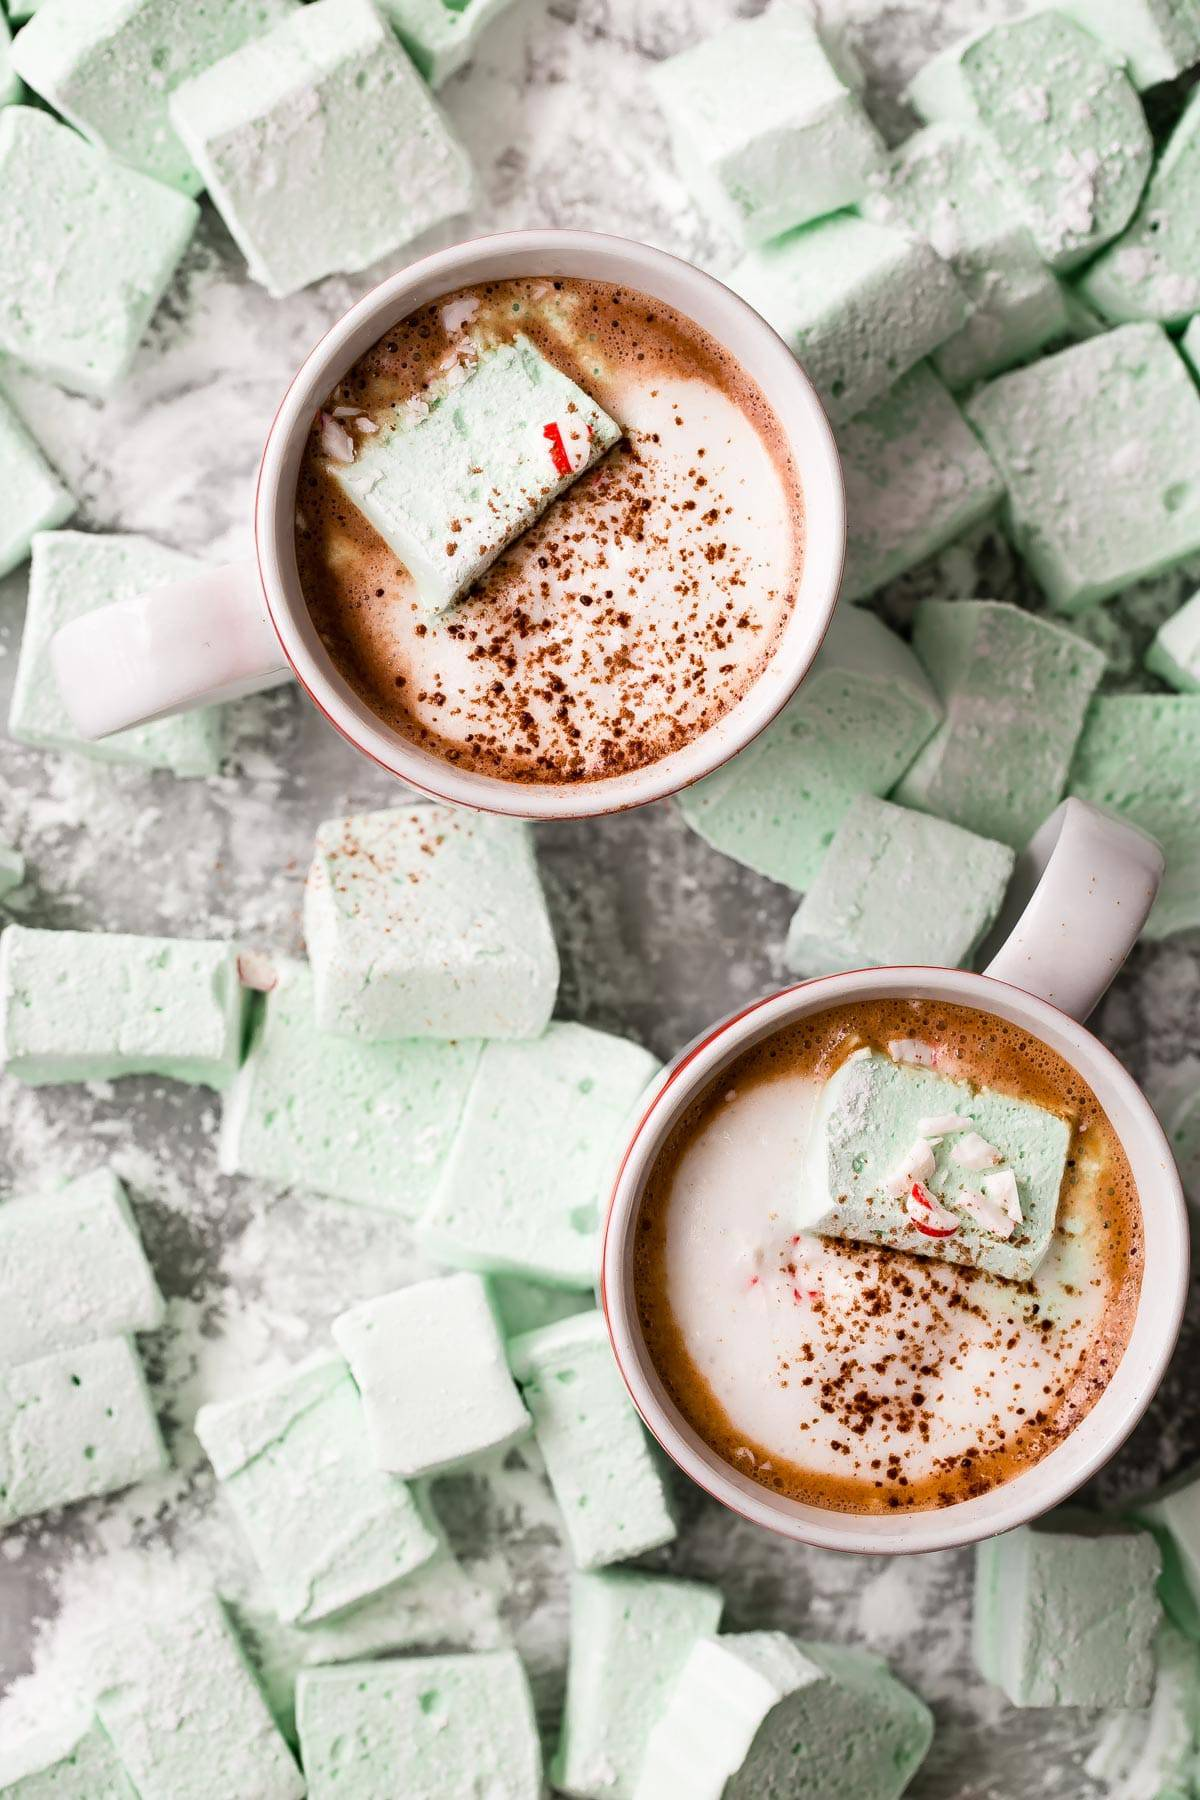 homemade Marshmallows tossed in powdered sugar and one sitting in a mug of hot chocolate